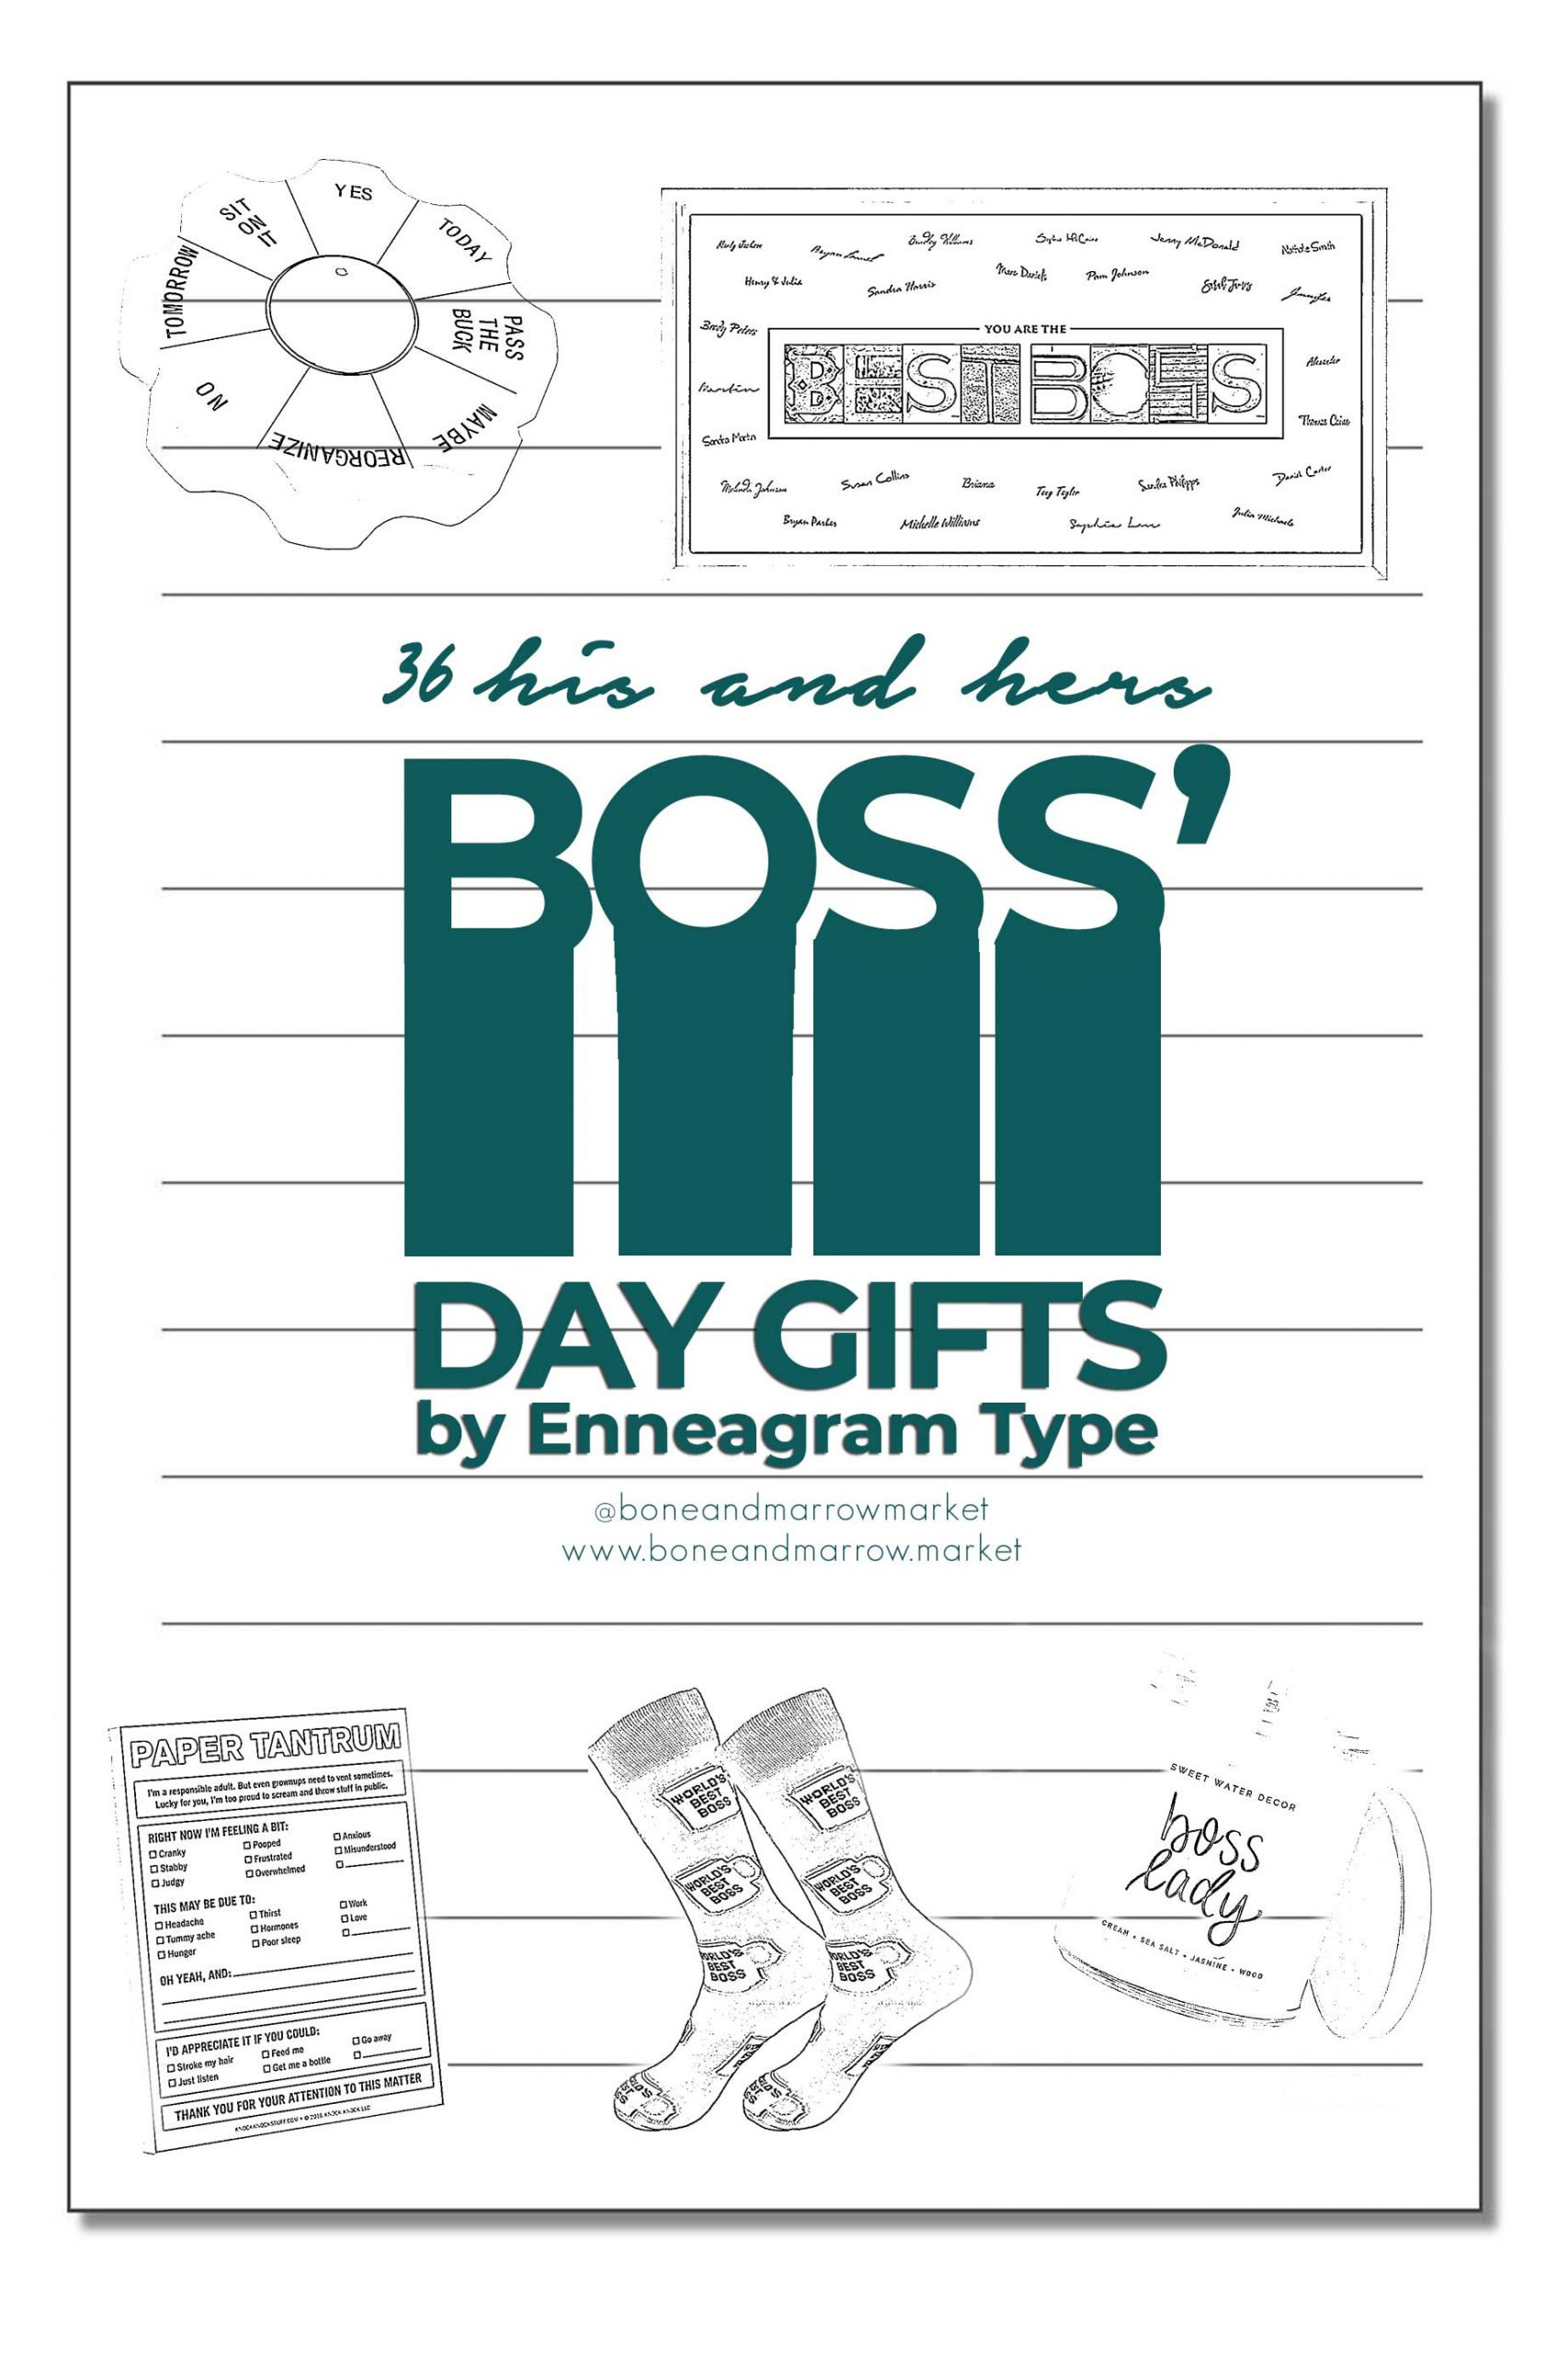 Boss' Day Gifts by Enneagram Type